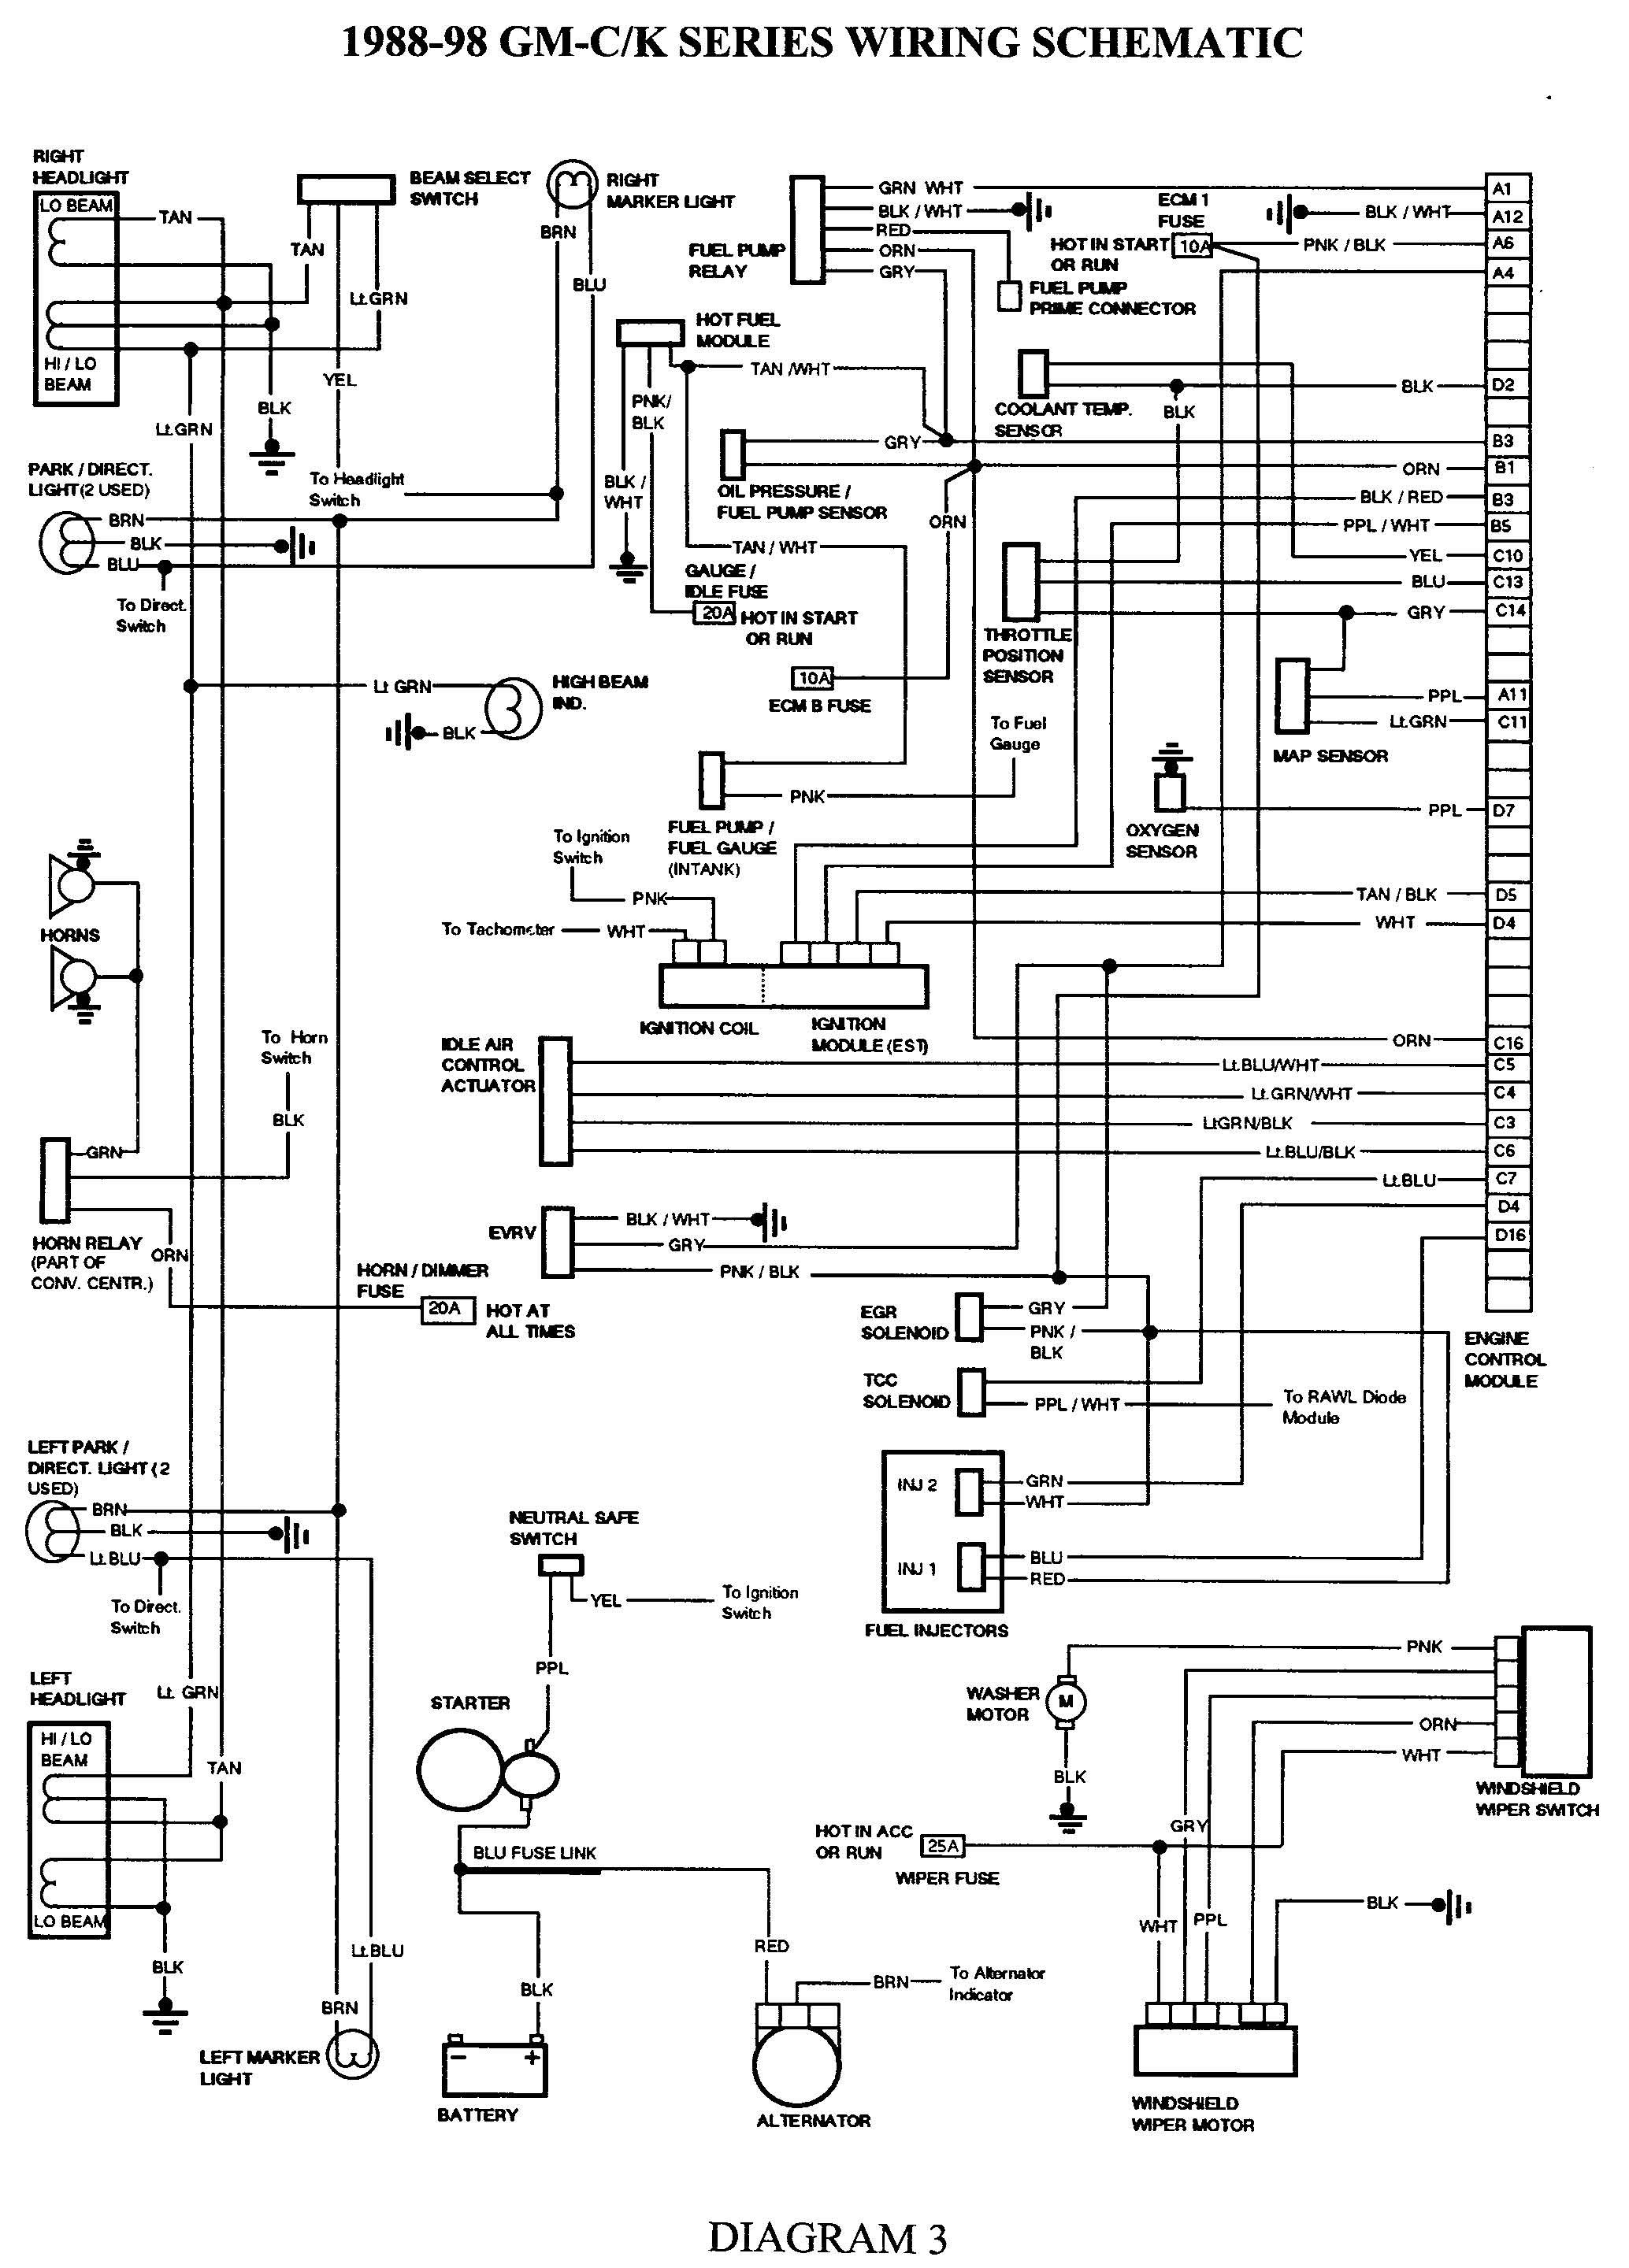 Ural Wiring Diagrams | Wiring Diagram on ural parts, ural engine diagram, ural ignition diagram,